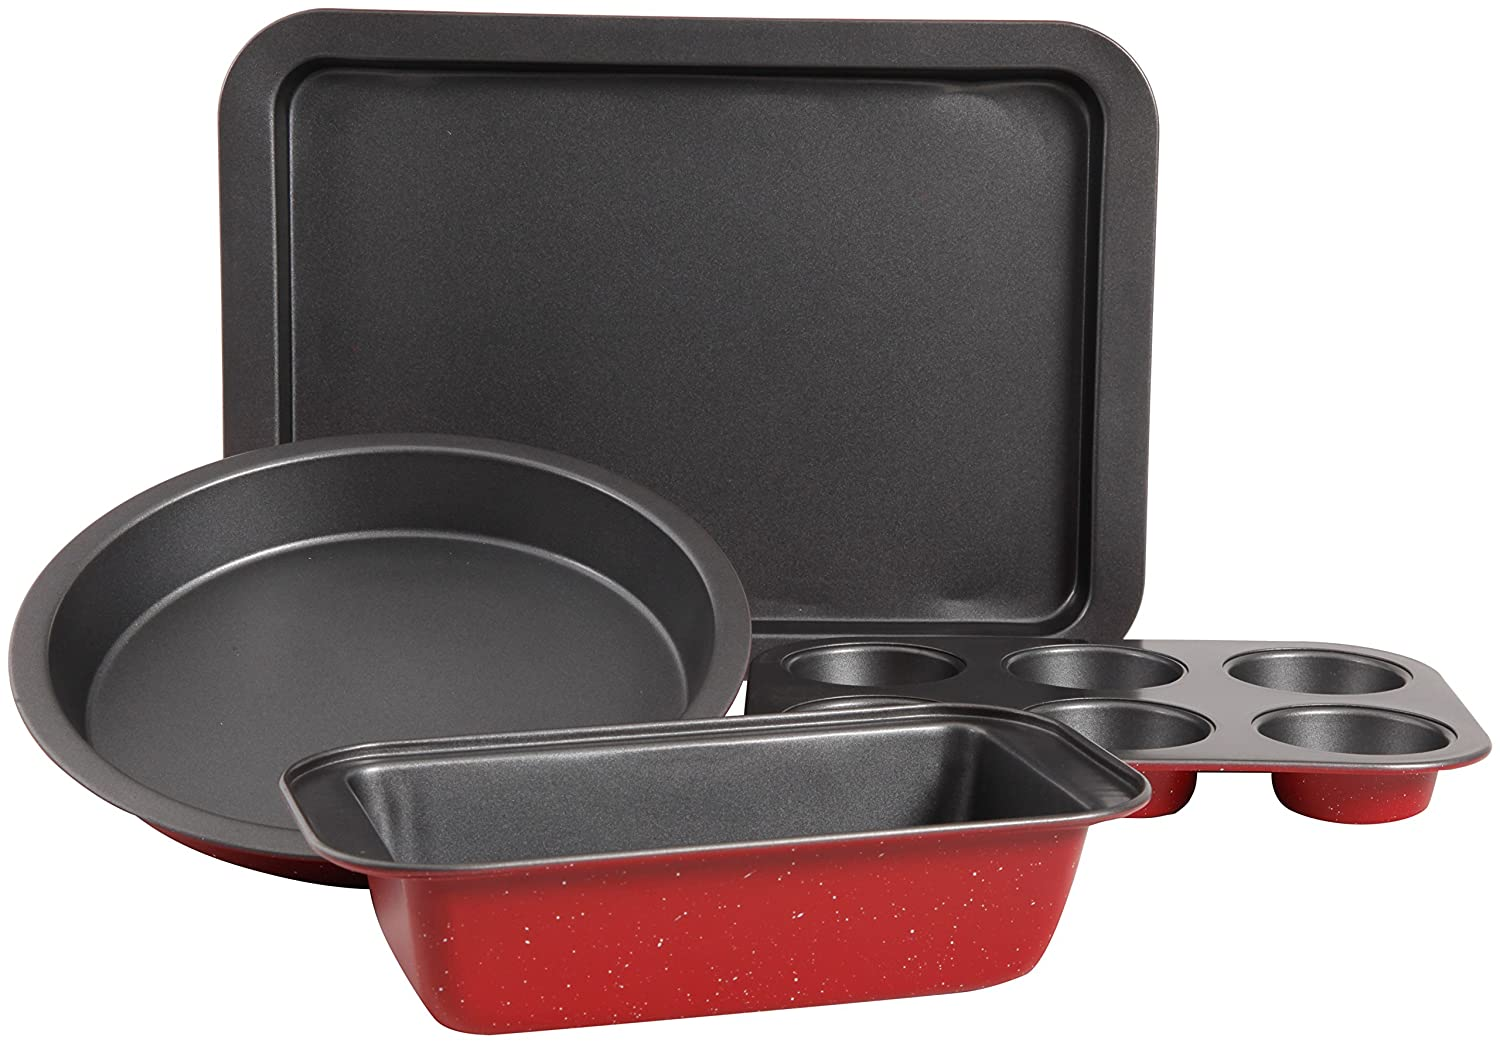 Sunbeam 104423.04 Confection Non-Stick 4 Piece Bakeware Set, Red